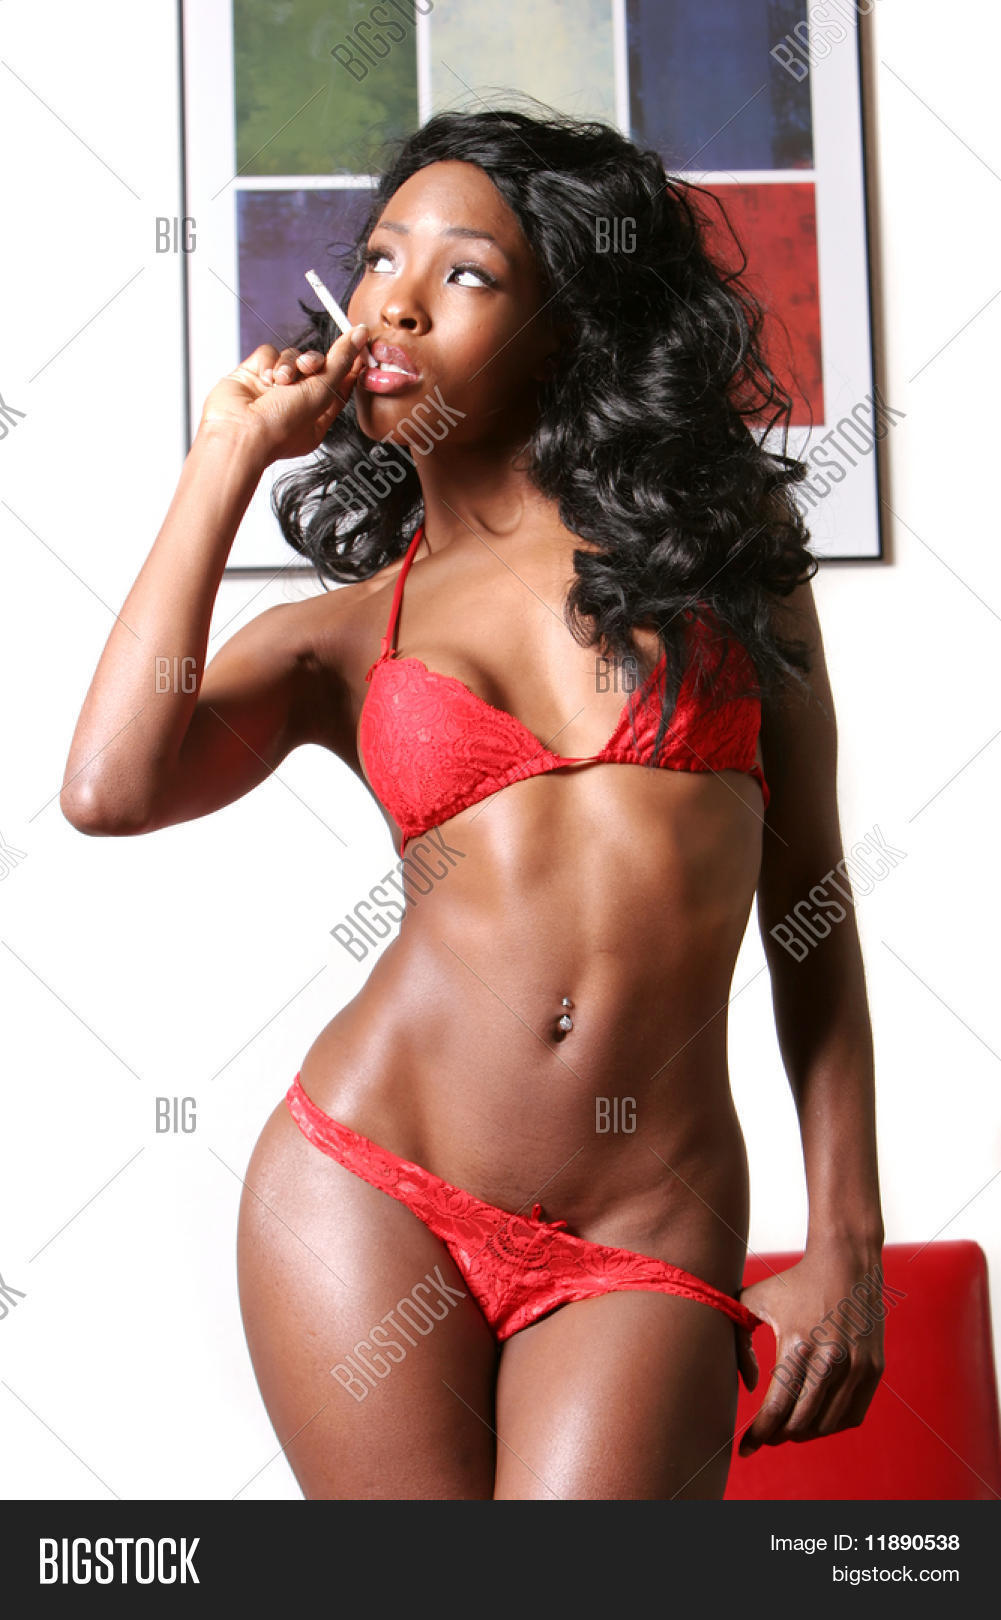 Nued boys Sexy Black Women Pictures